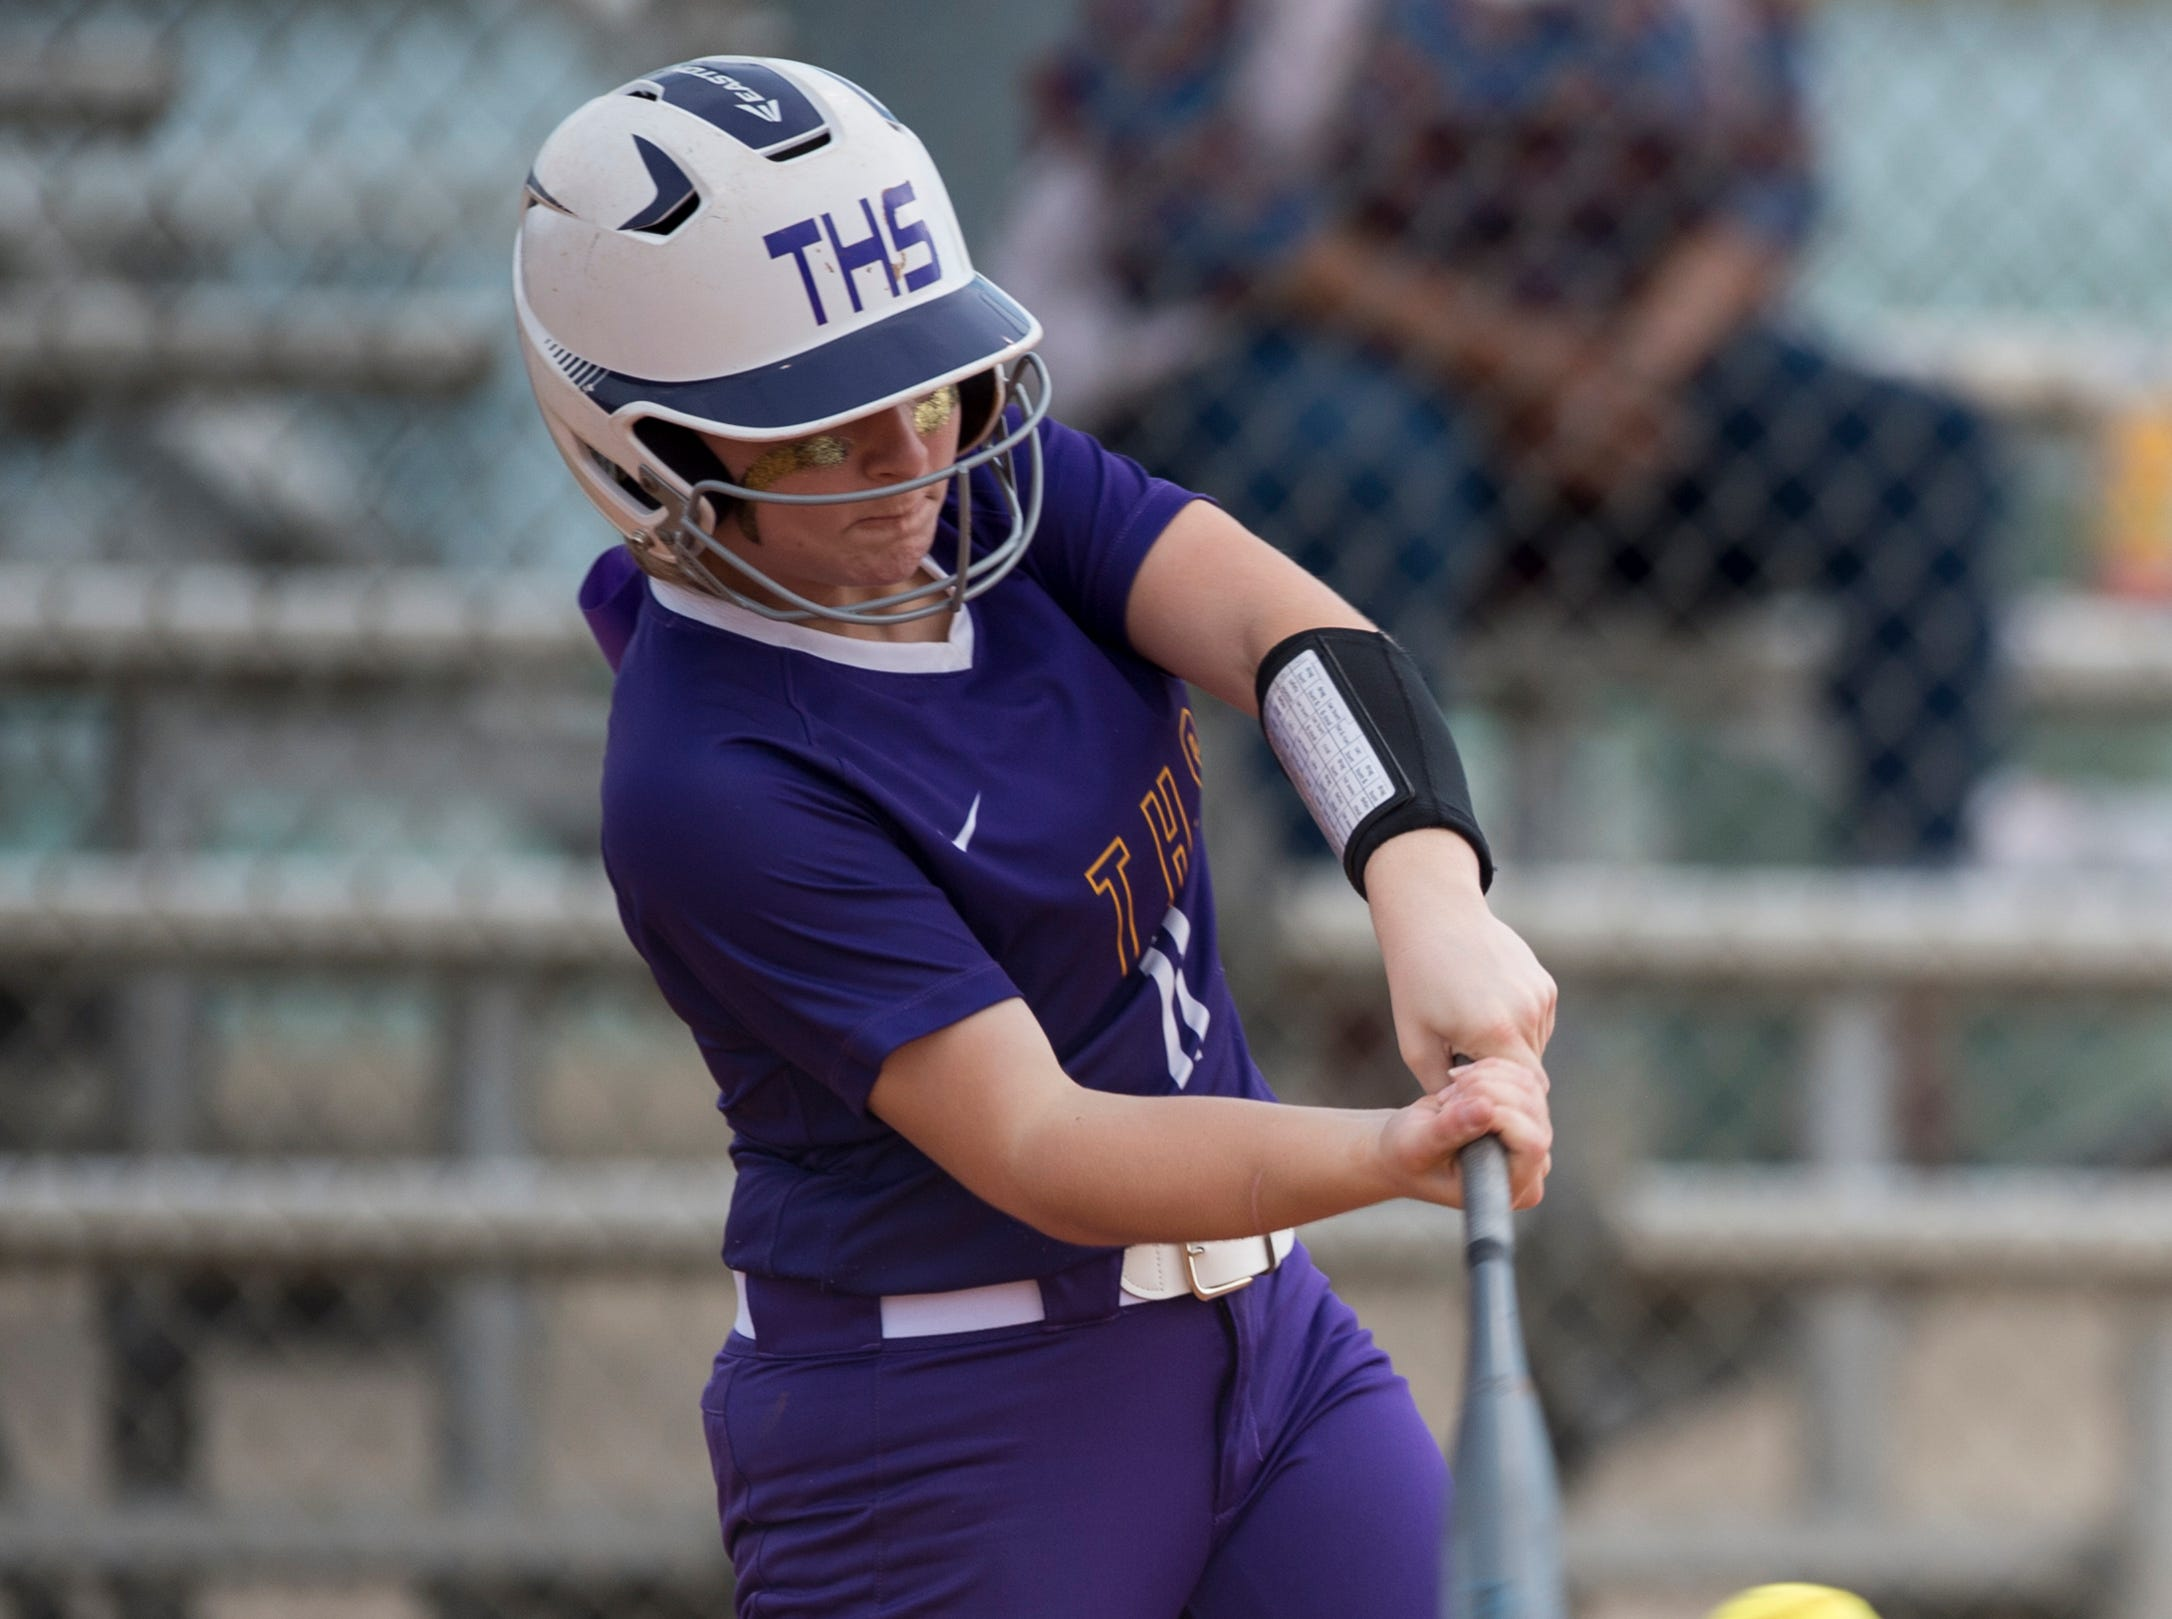 Tallassee's Ella Thrash (11) swings at the ball at Thompson Park in Montgomery, Ala., on Thursday, March 14, 2019. Tallassee defeated Brew Tech 7-0.